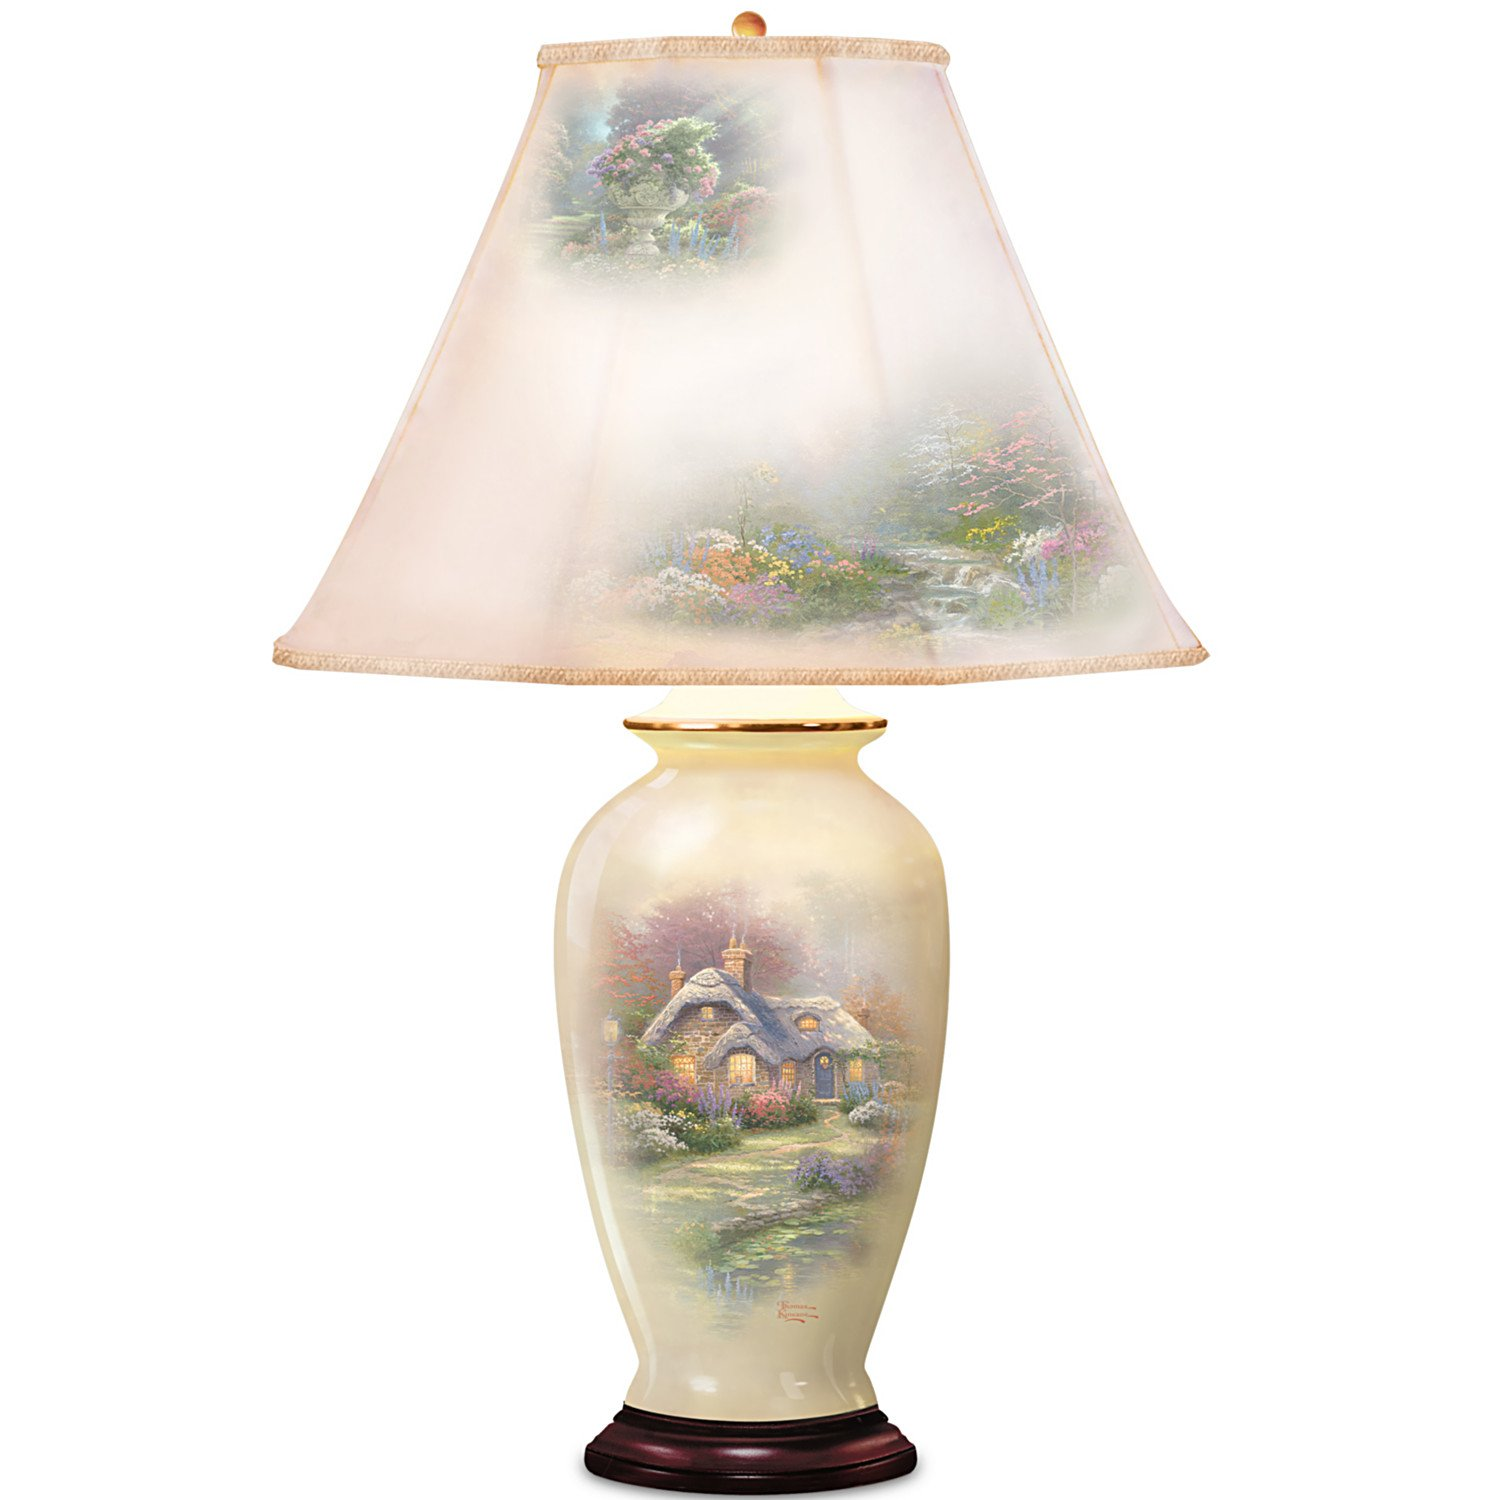 Thomas Kinkade Everettu0027s Cottage Charm Porcelain Ginger Jar Table Lamp By  The Bradford Exchange     Amazon.com